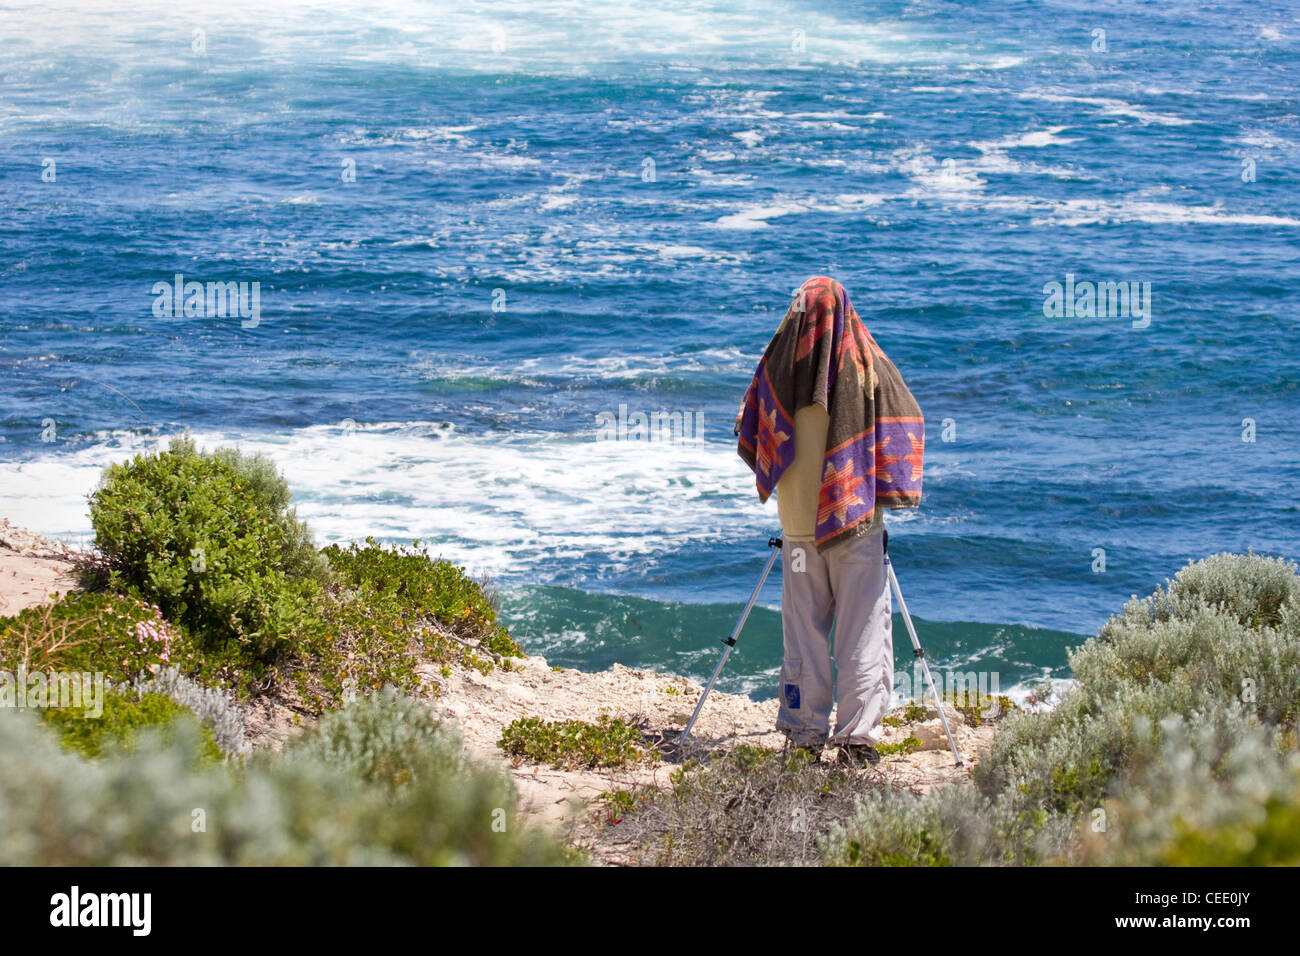 A  photographer shields himself from the hot sun using a beach towel in Western Australia near Margaret River - Stock Image